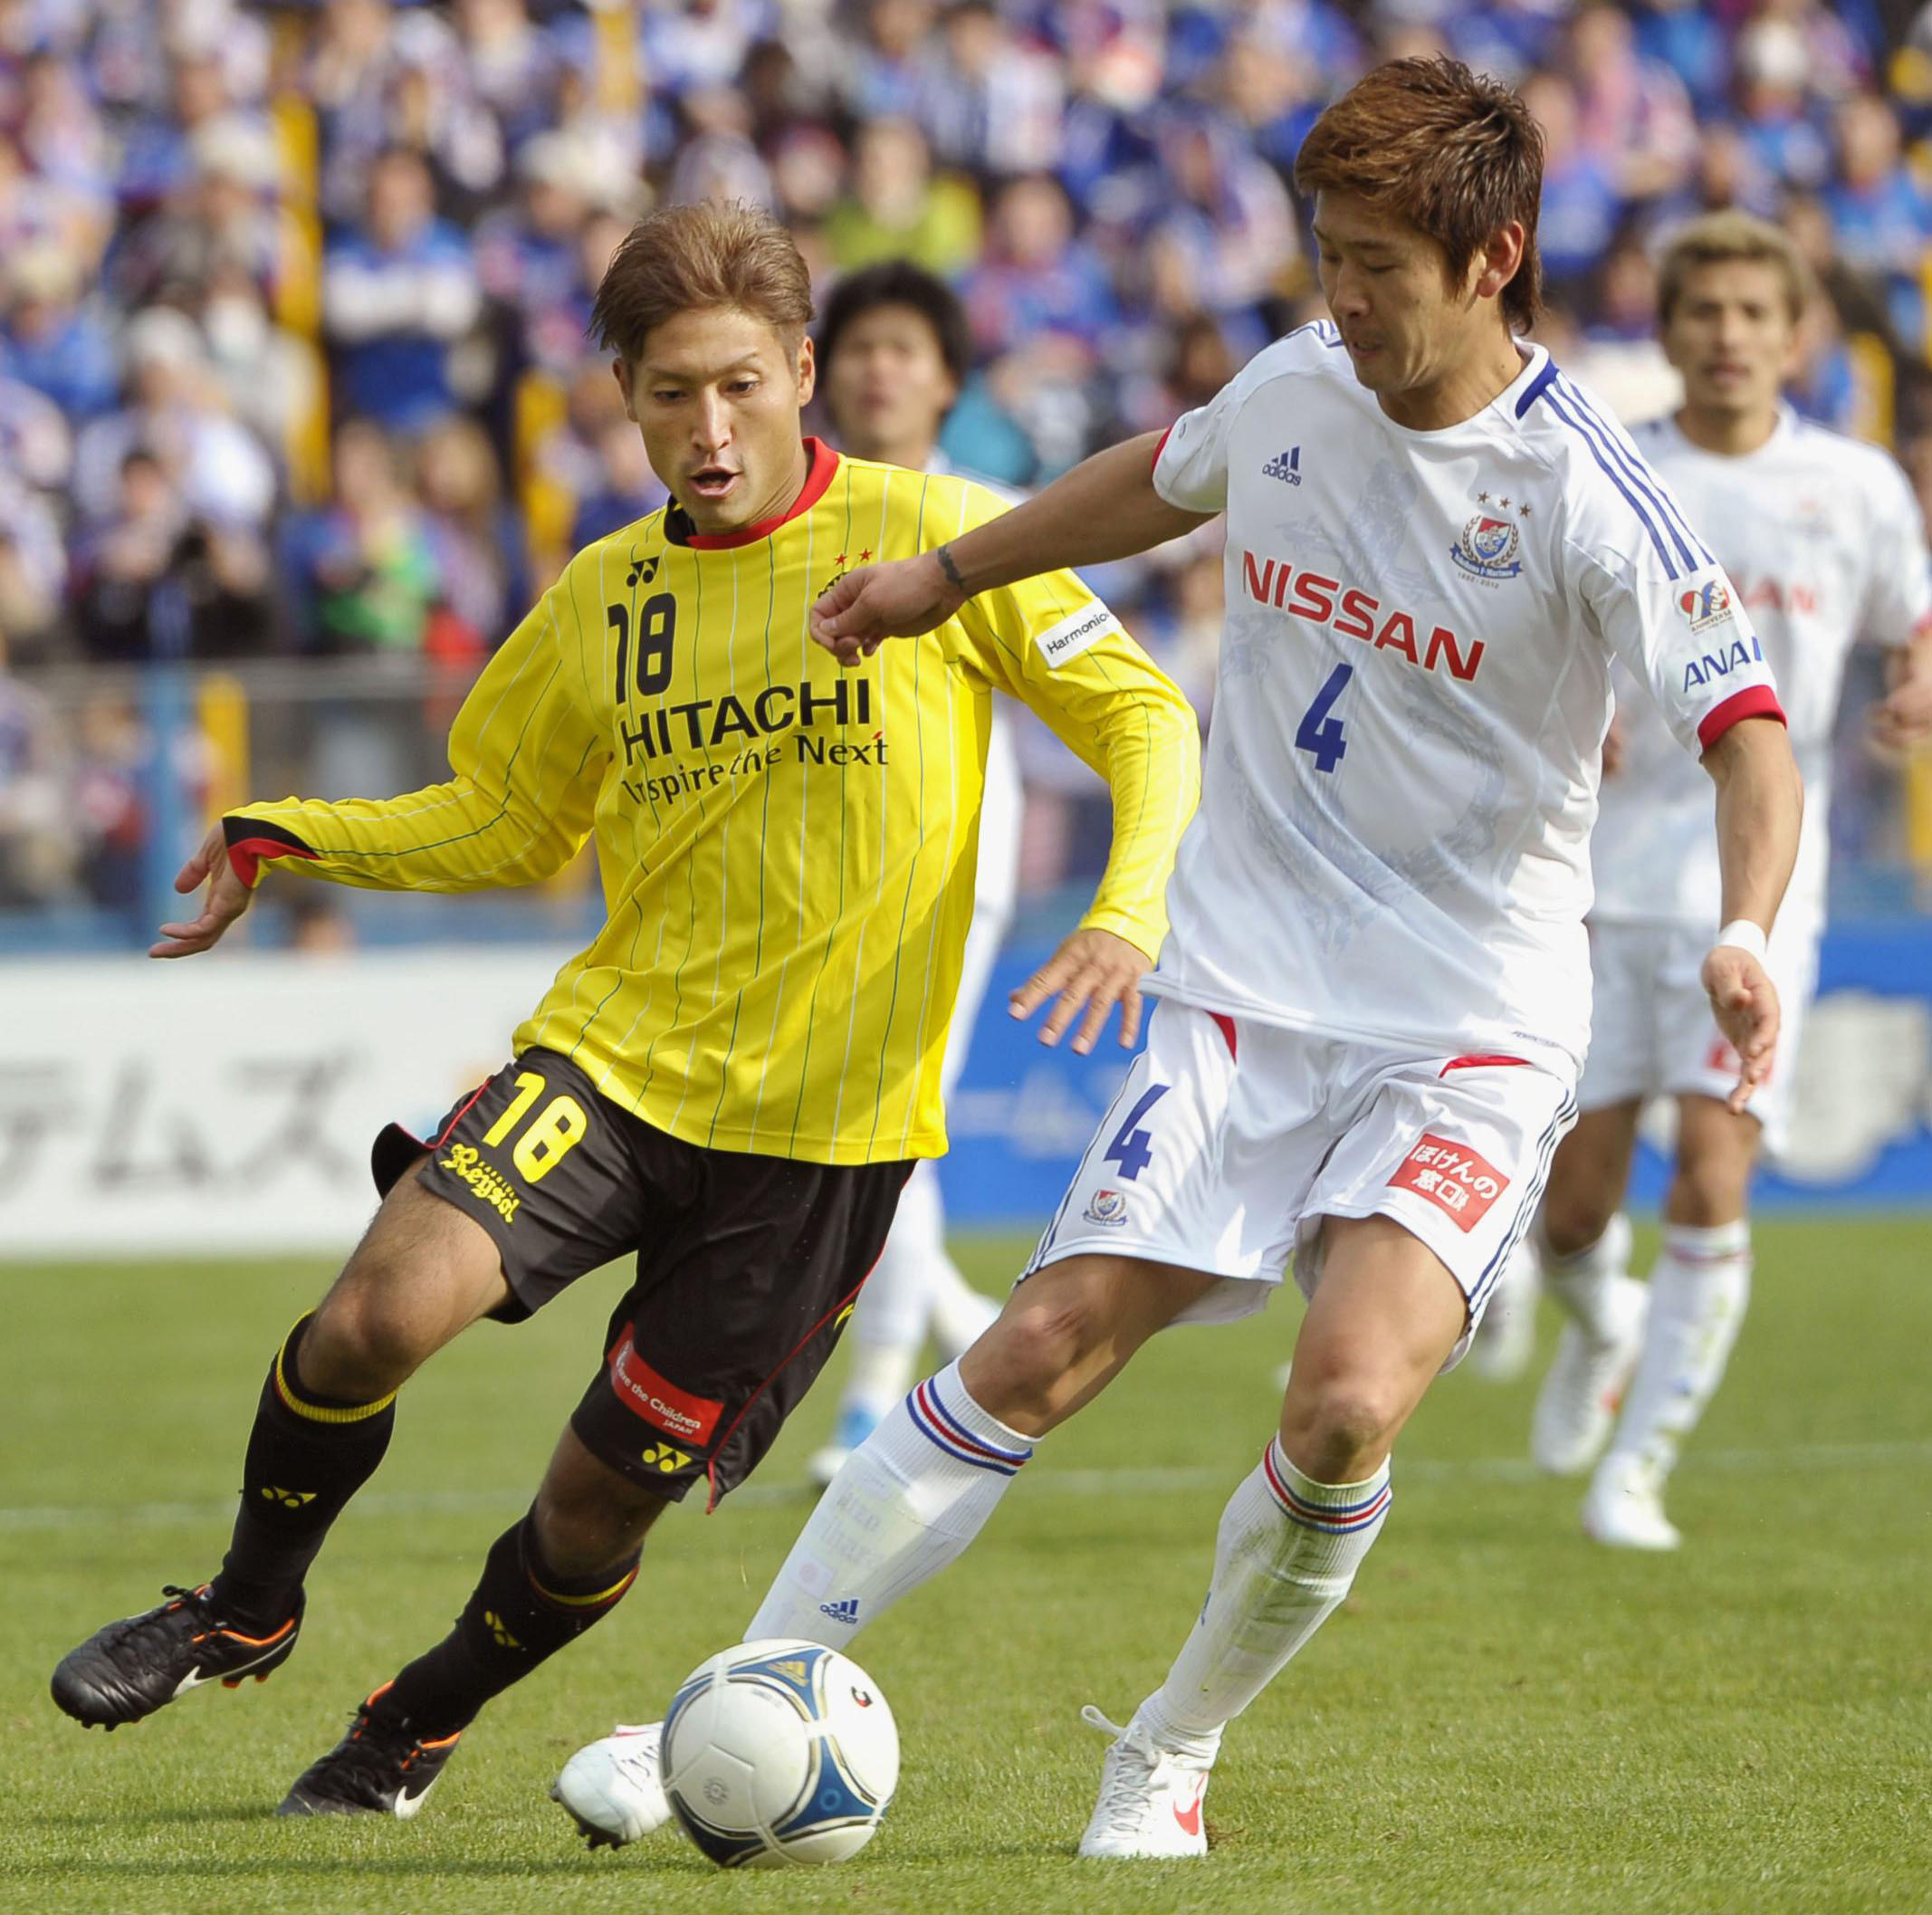 Goal rush: Kashiwa's Junya Tanaka (left) and Yokohama's Yuzo Kurihara compete for the ball at Hitachi Stadium on Sunday. The game ended in a 3-3 draw. | KYODO